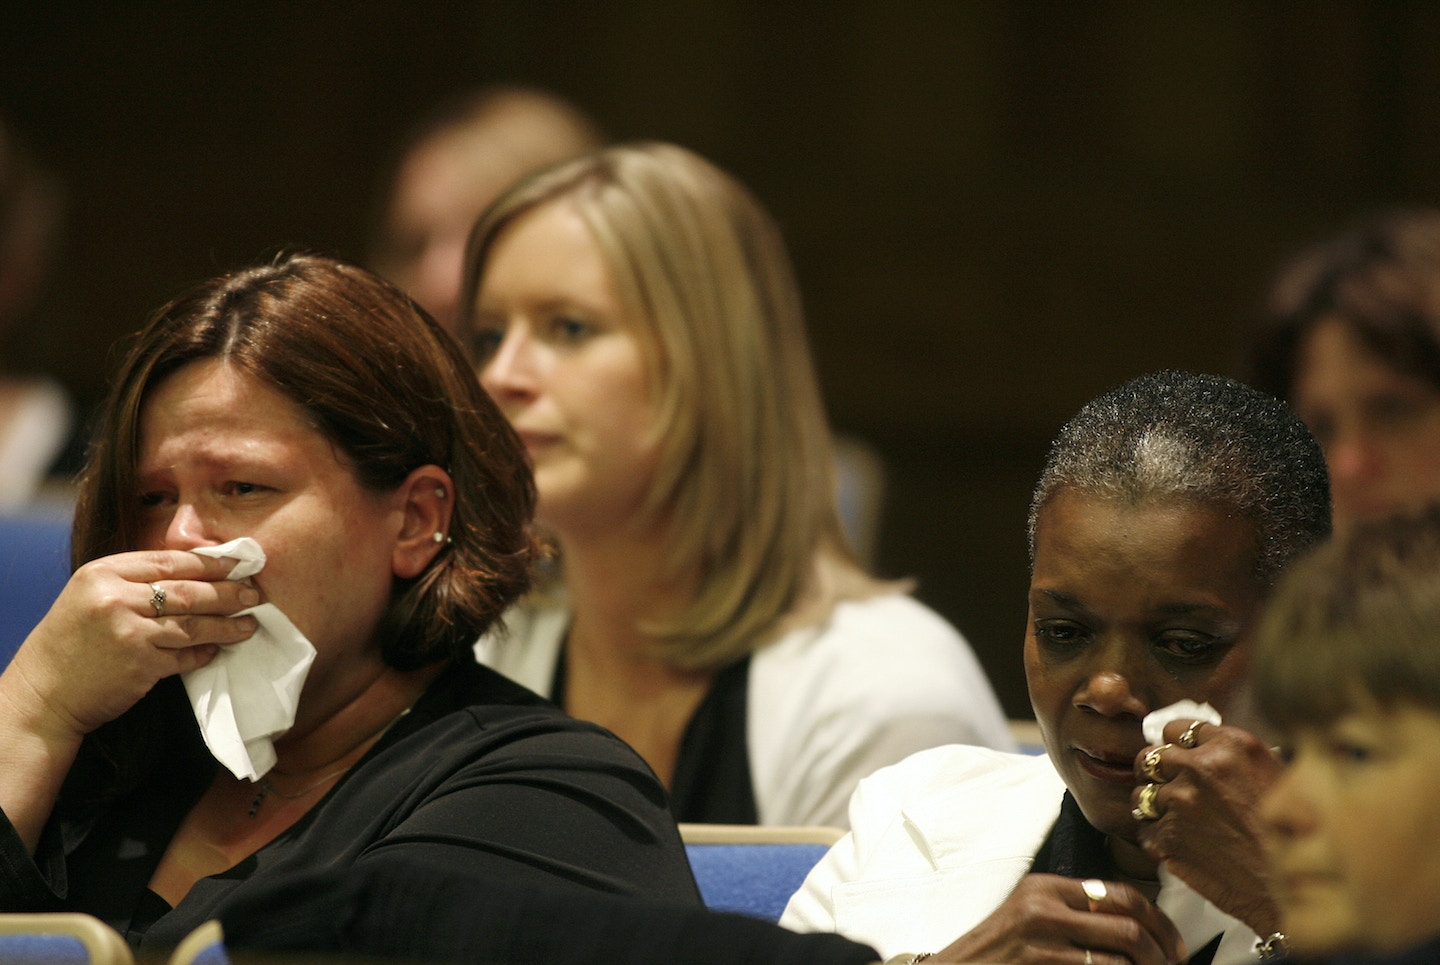 Cindy McFarland, widow of Montgomery Regional Security guard Derrick McFarland, left, and Rosalind McFarland, Derrick McFarland's mother, right, react after hearing Judge Ray Grubbs decision to move William Morva's capital murder trial to another venue Thursday, Sept. 20, 2007, at Montgomery County Circuit Court in Christiansburg, Va.  Grubbs moved the trial because of difficulty seating a jury. ?   Morva, 25, is accused in the August 2006 slayings of hospital security guard Derrick McFarland and county sheriff's Cpl. Eric Sutphin.  (AP Photo/Jared Soares, Pool)